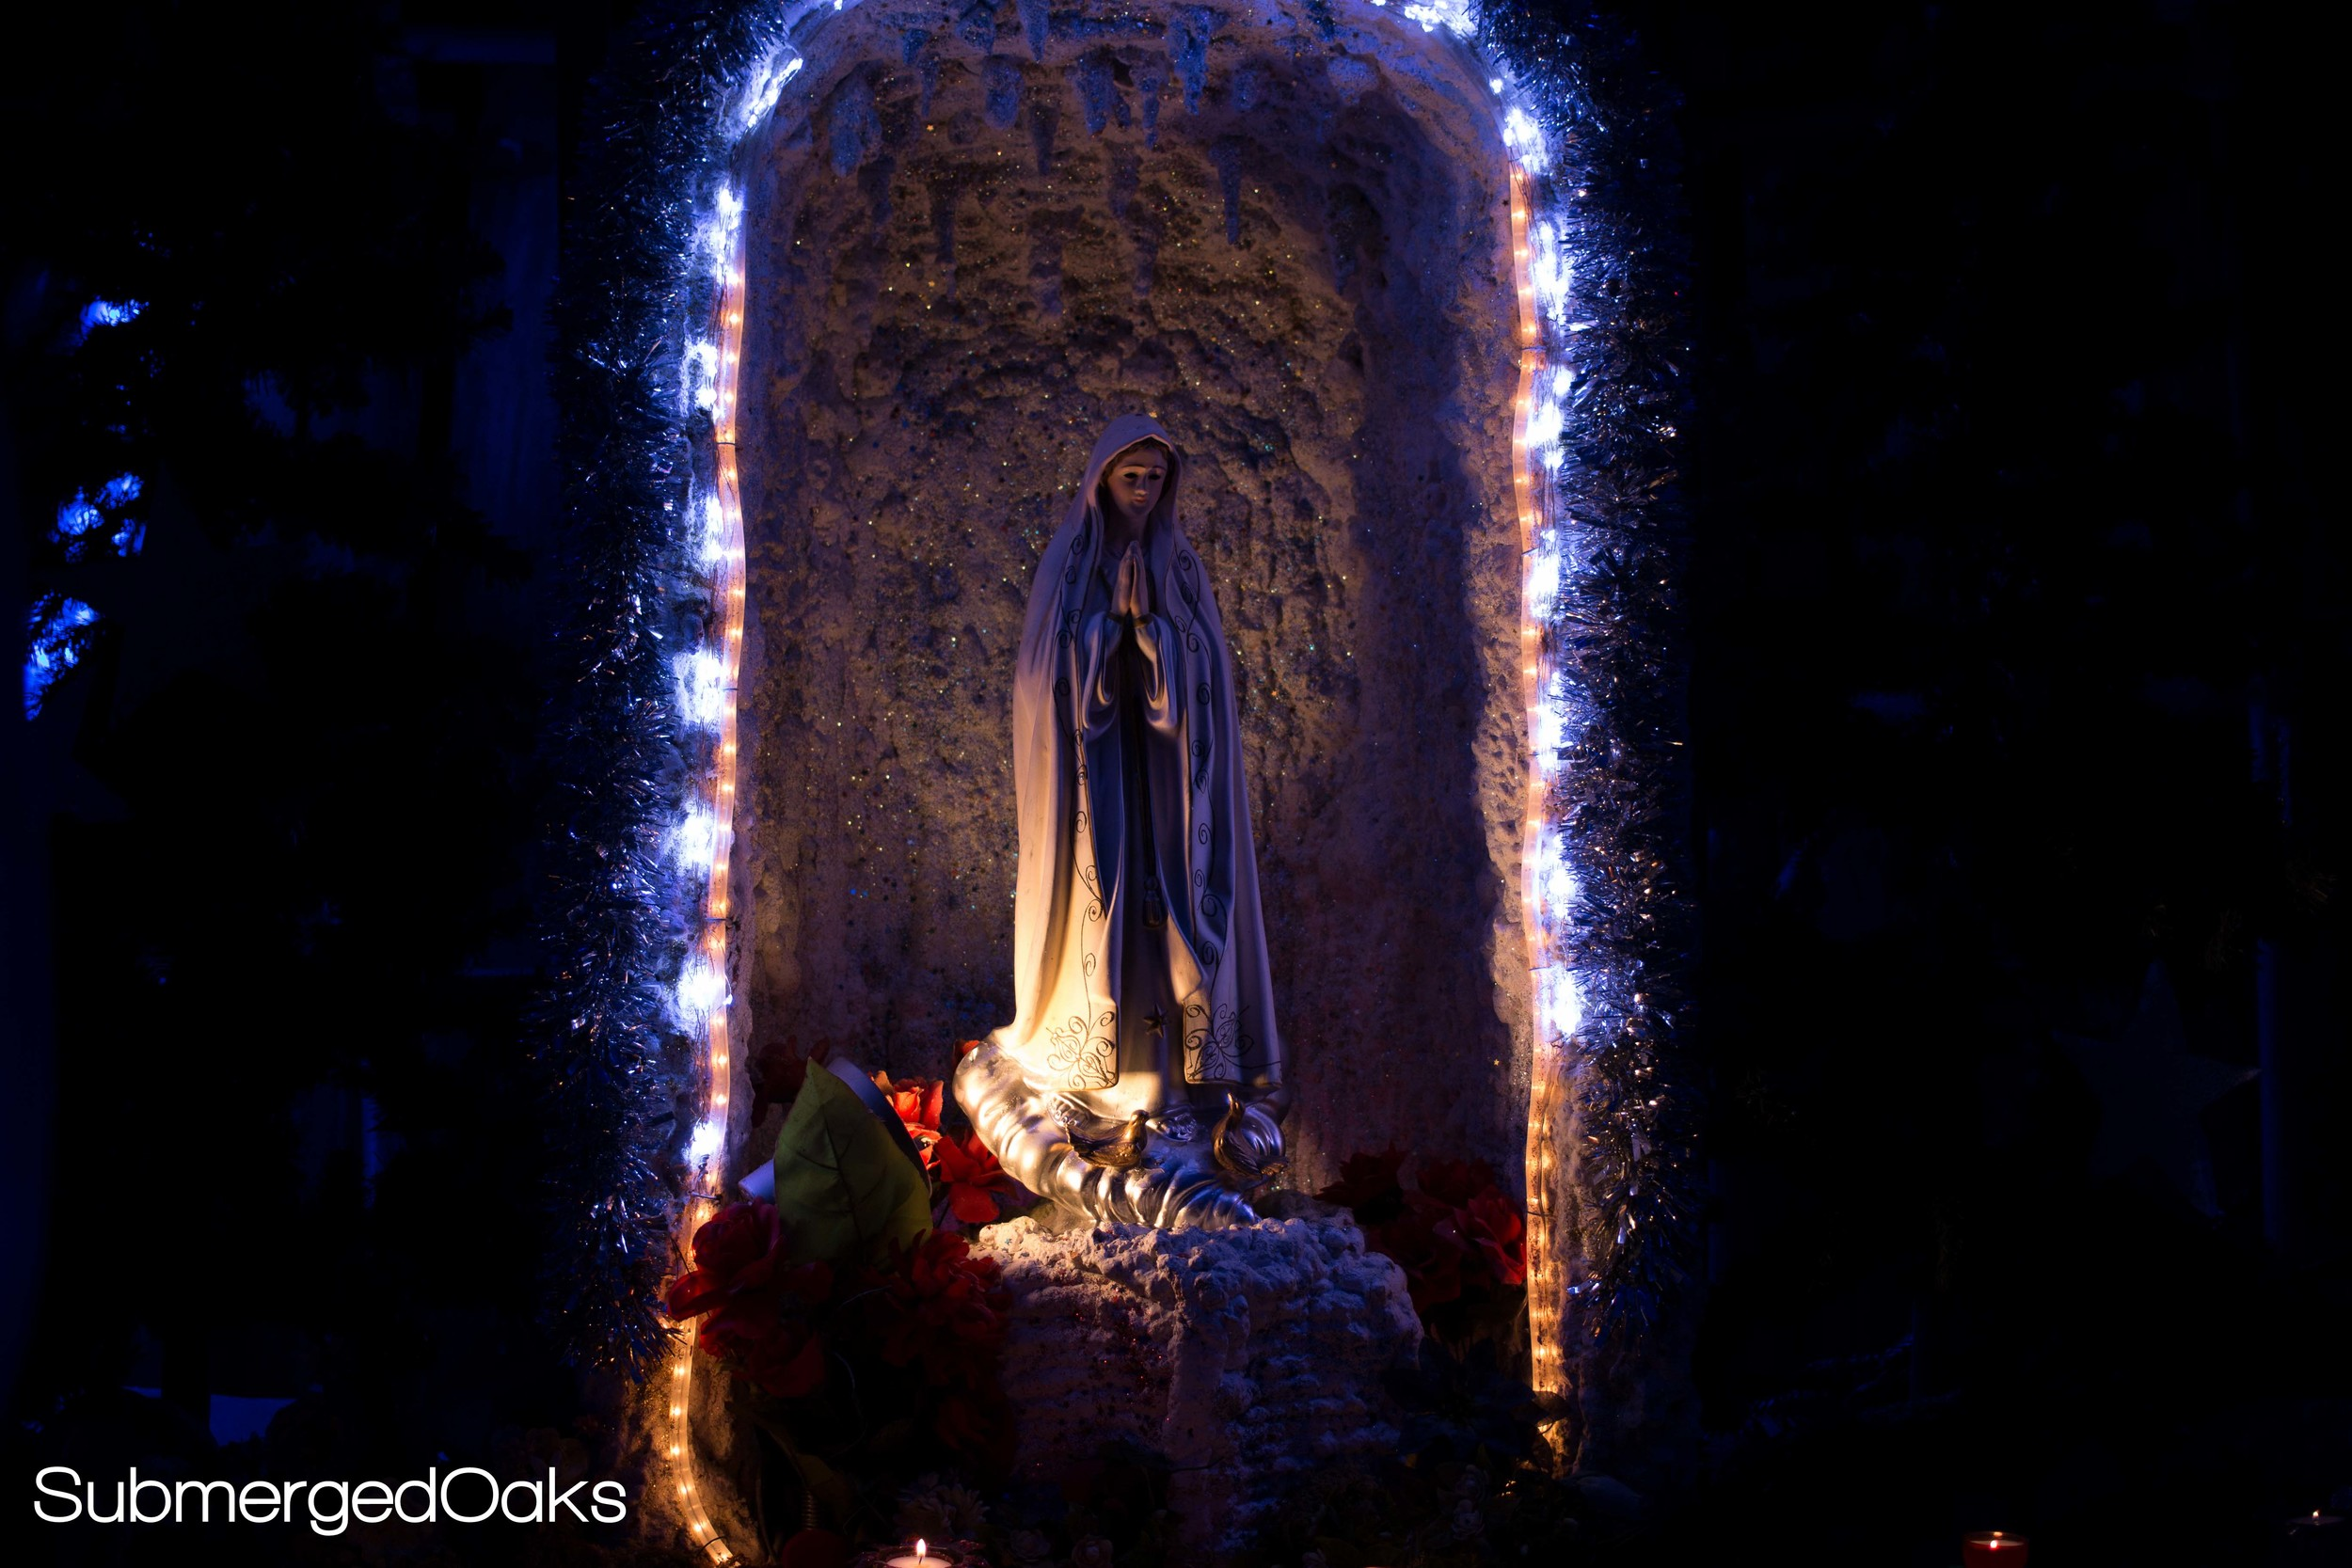 Small grotto with statue of Mary